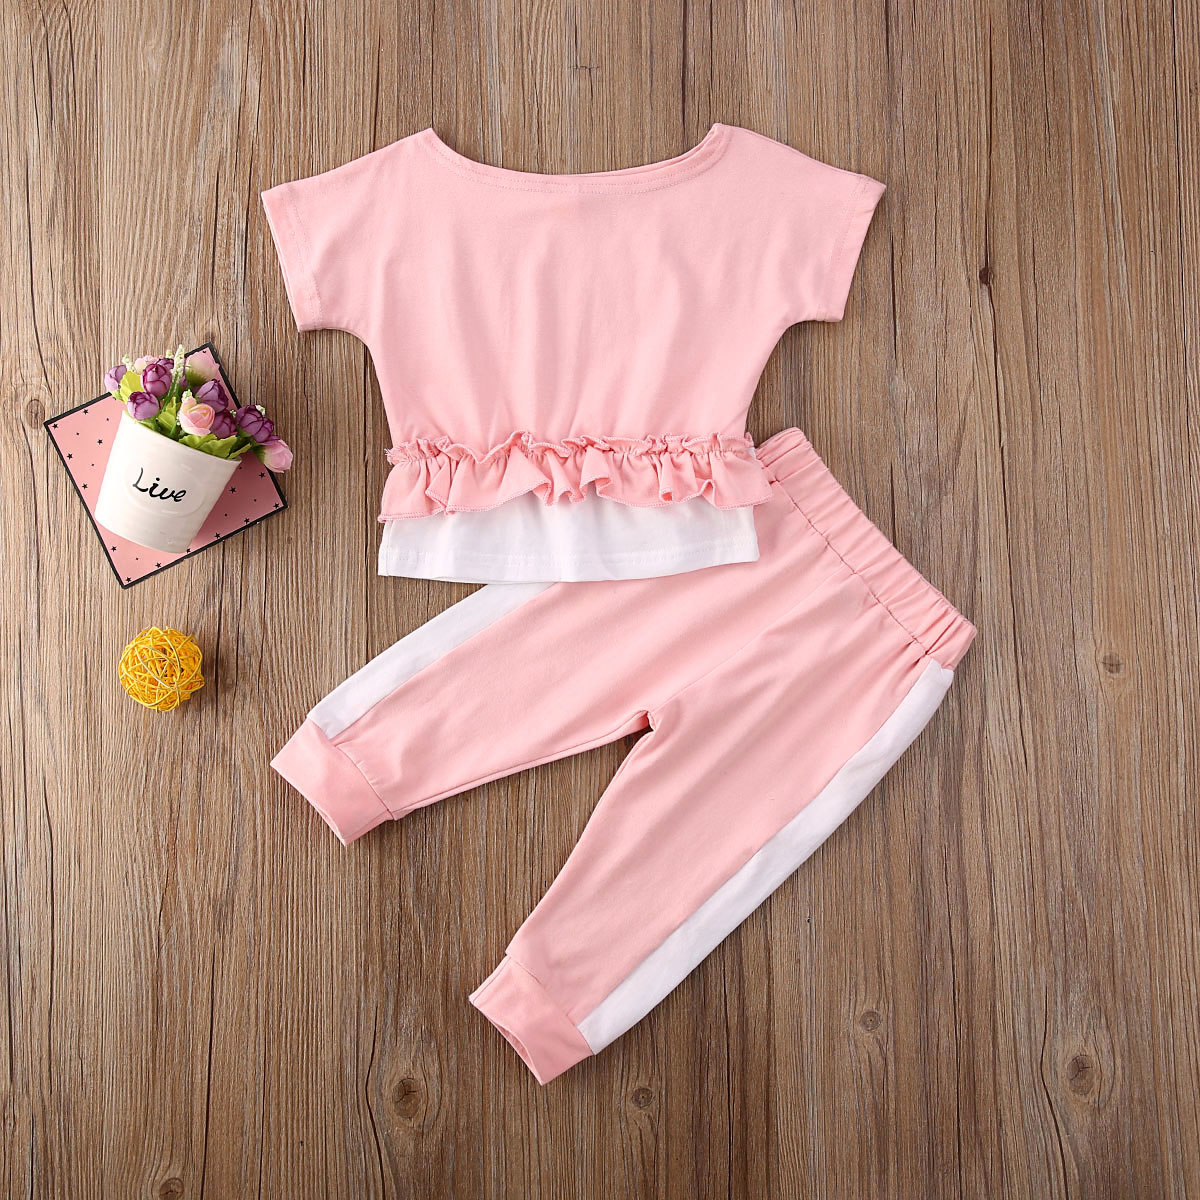 Pudcoco Toddler Baby Girl Clothes Solid Color Short Sleeve Ruffle Tops Long Pants 2Pcs Outfits Cotton Clothes Tracksuit